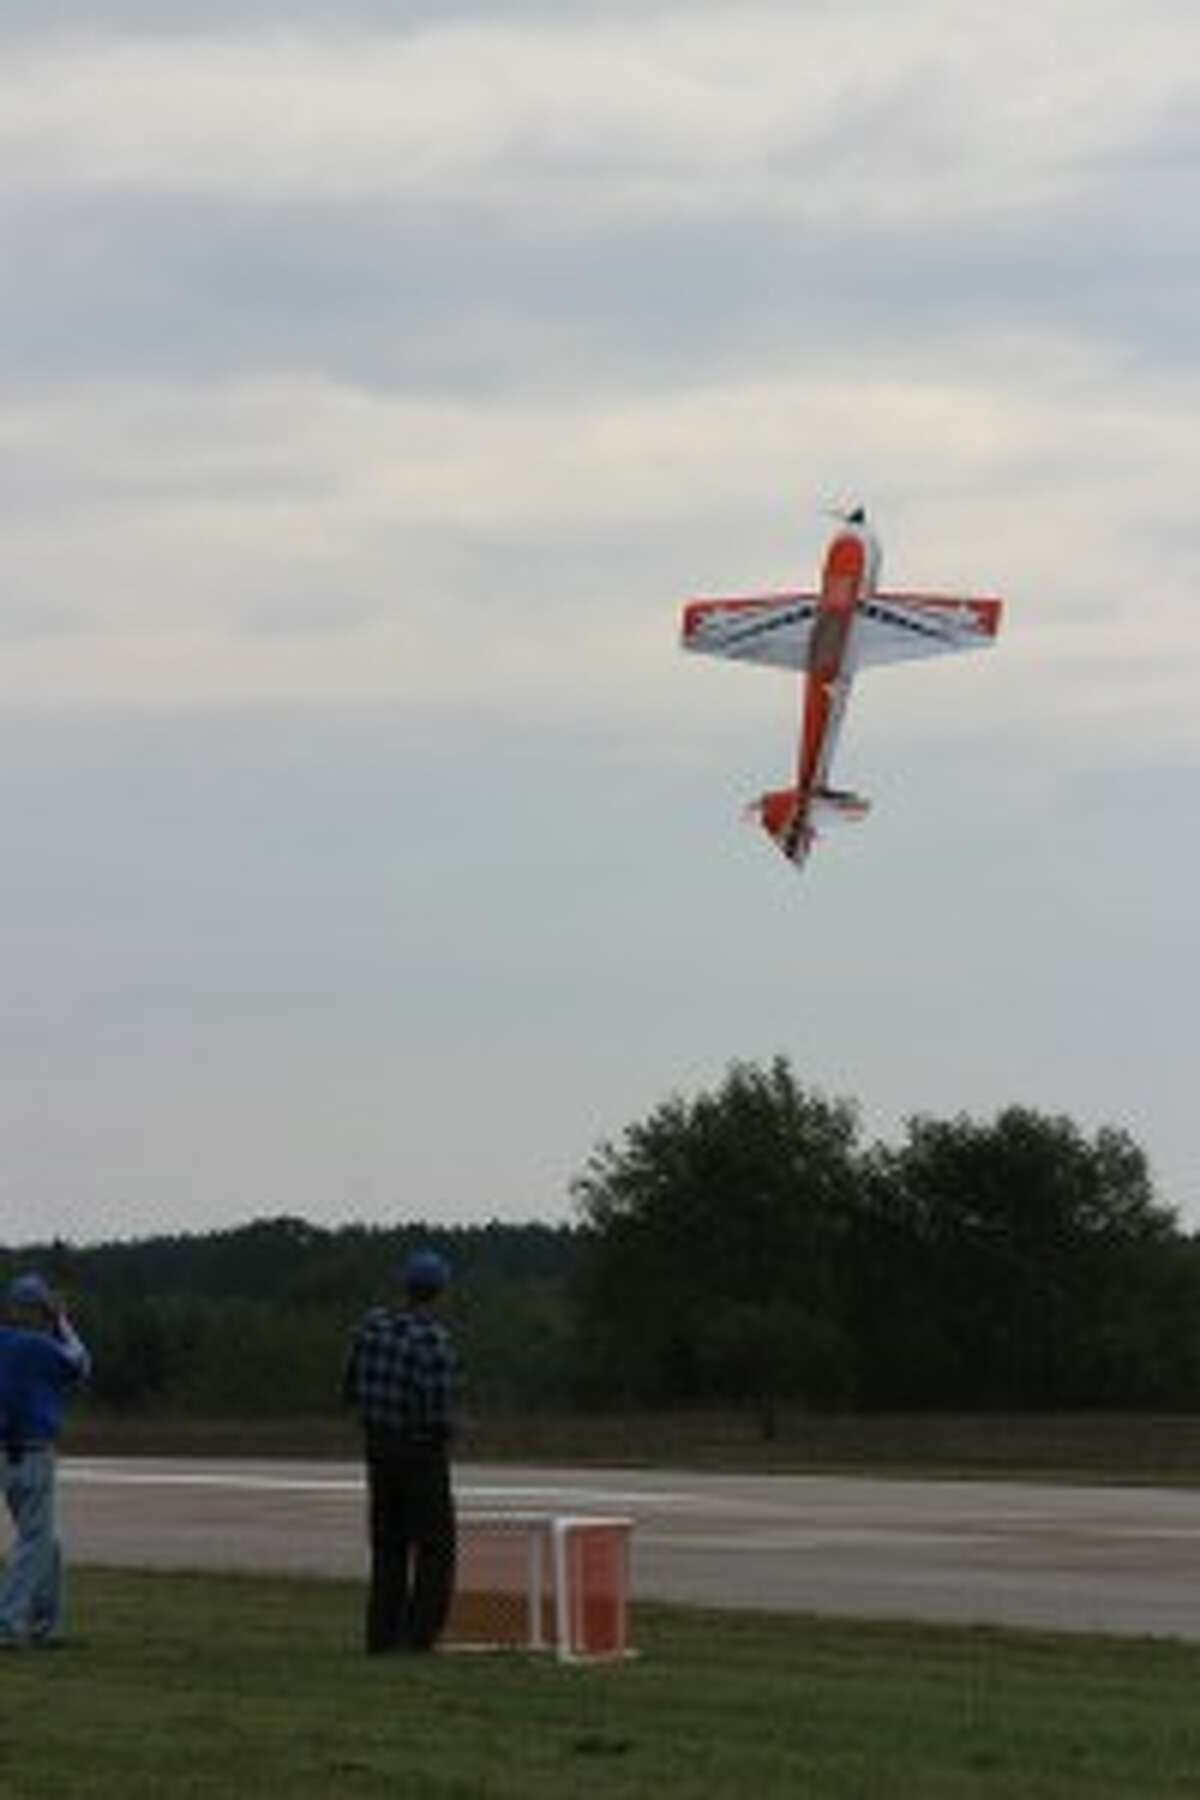 """TRICKY: A pilot makes his model plan hover, a trick called """"prop hanging""""."""